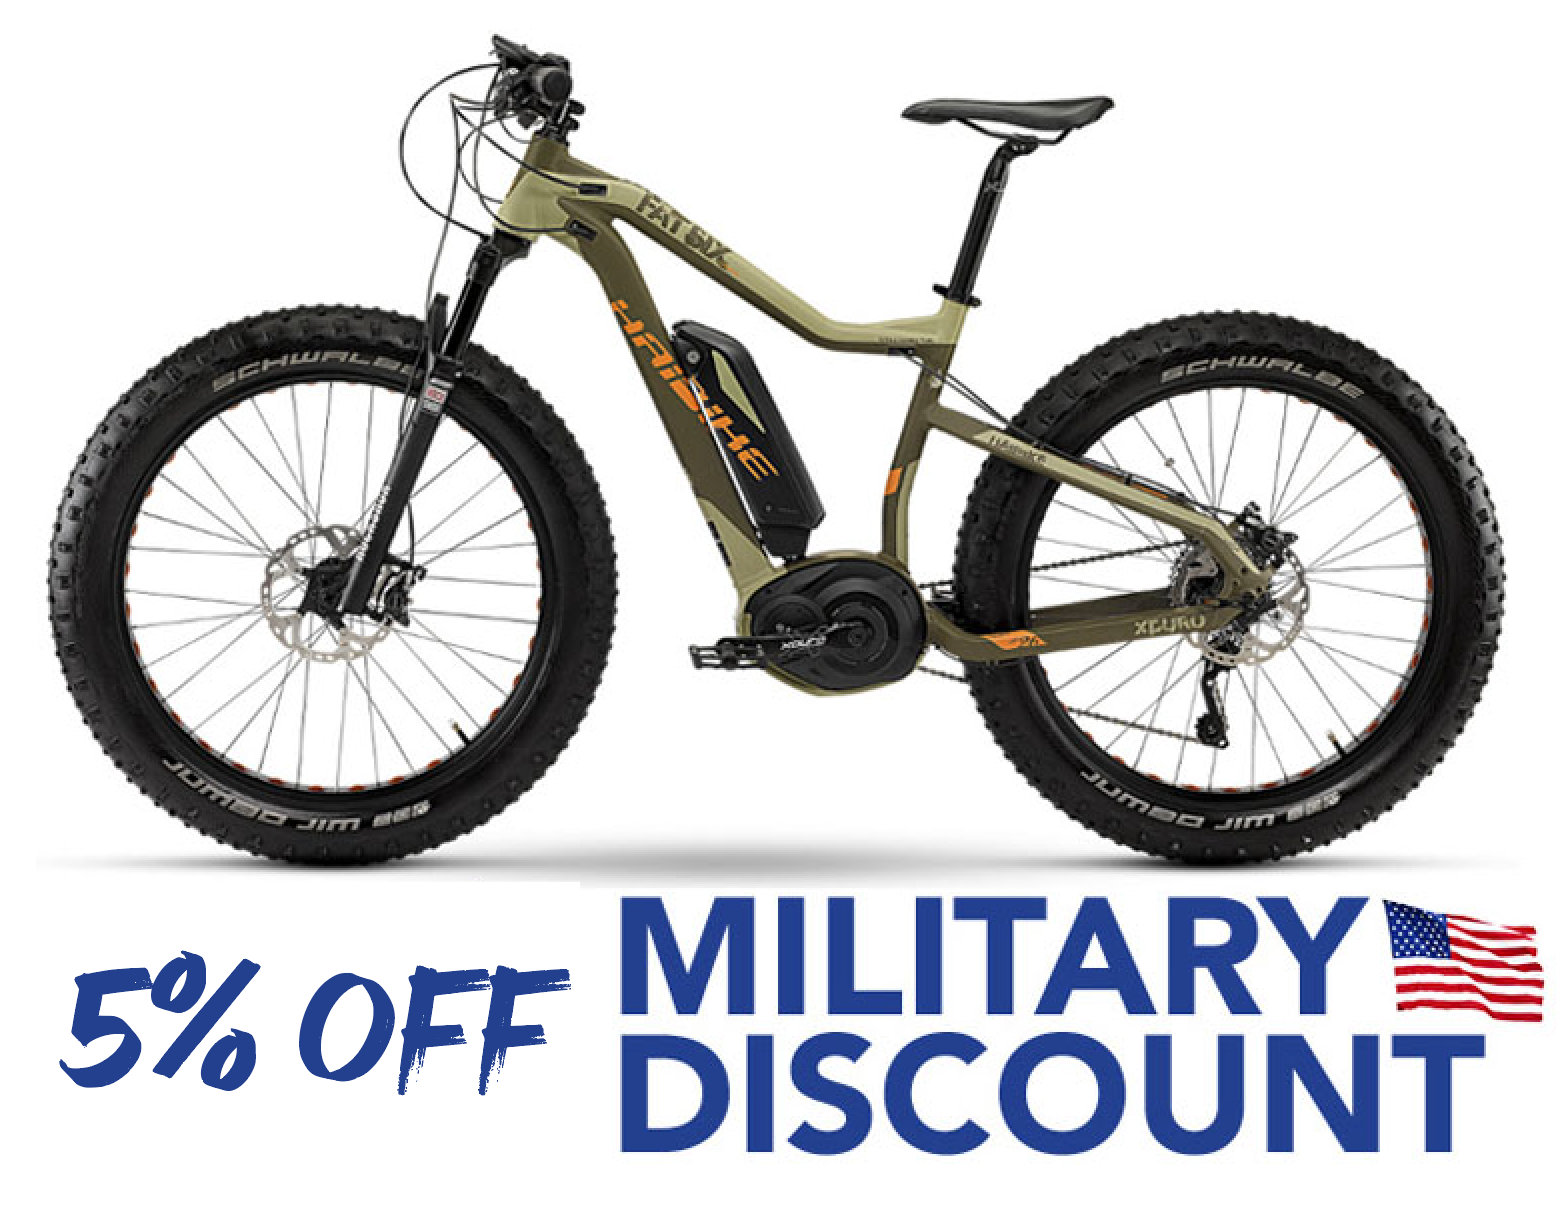 millitary discount 5 percent.png